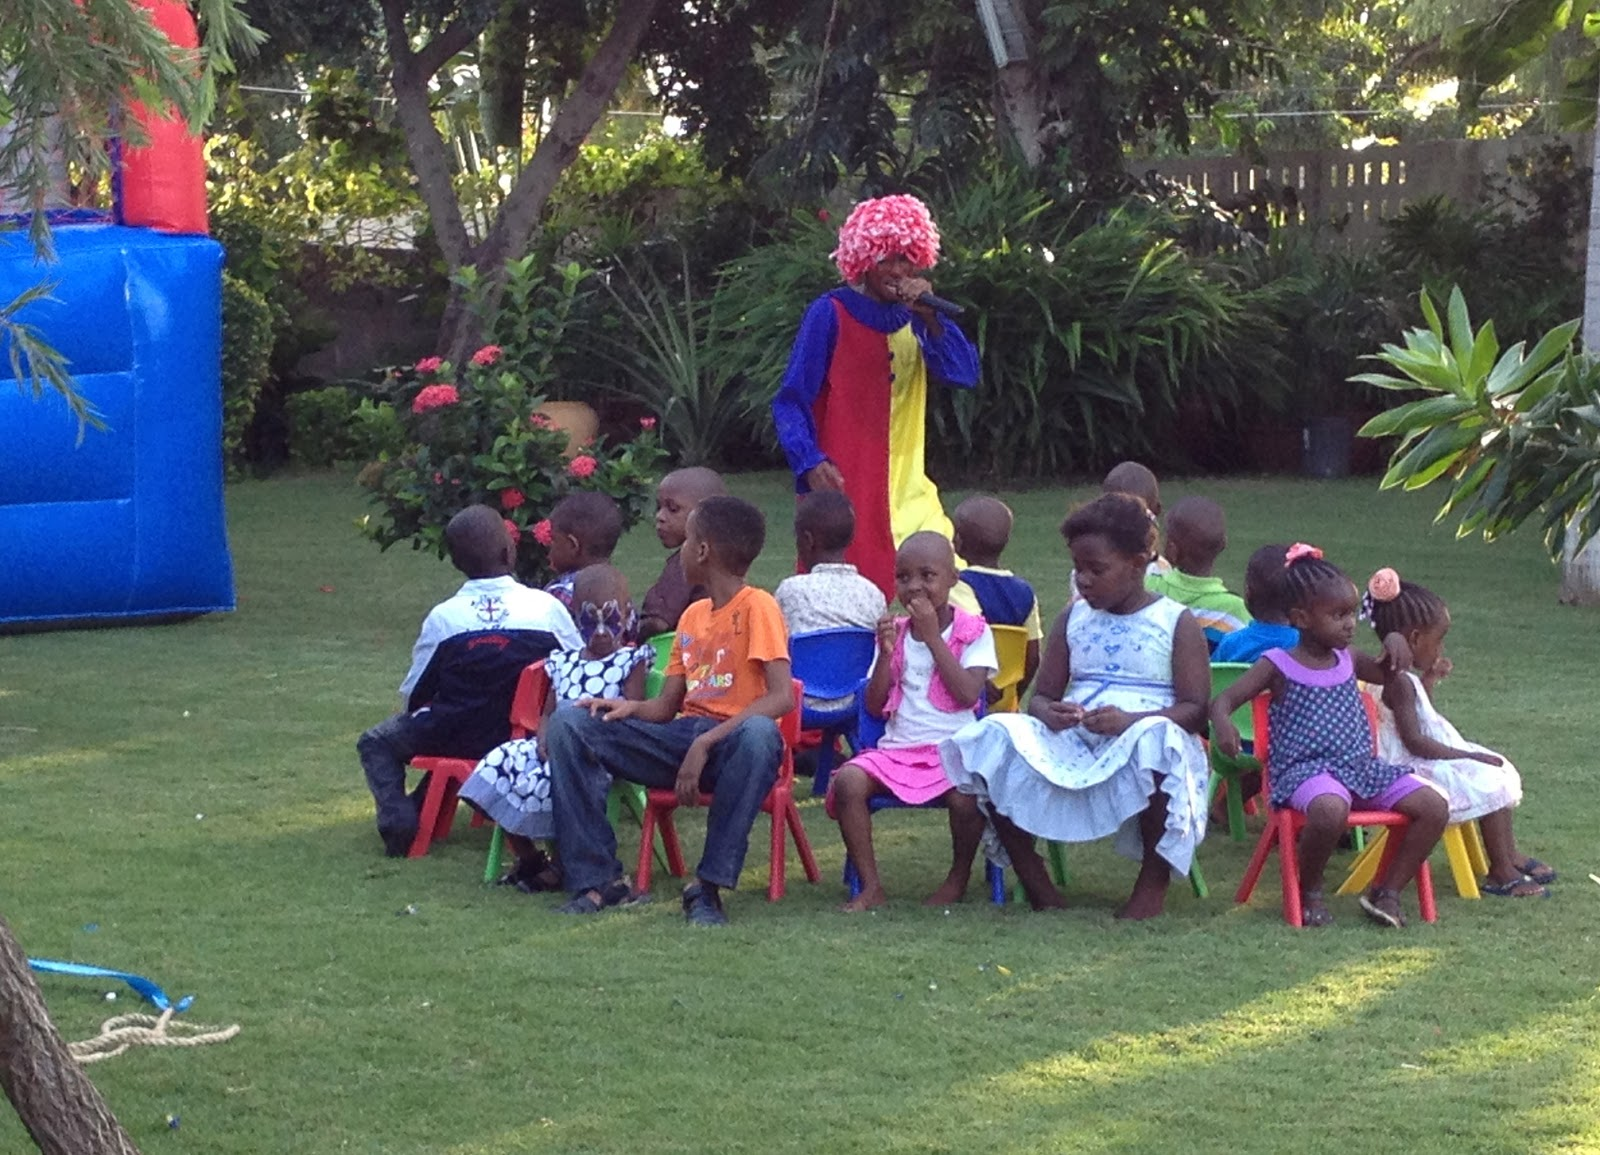 Musical chair game for kids - Clown Leading Kids Through Different Games Here They Were Playing A Musical Chair Game